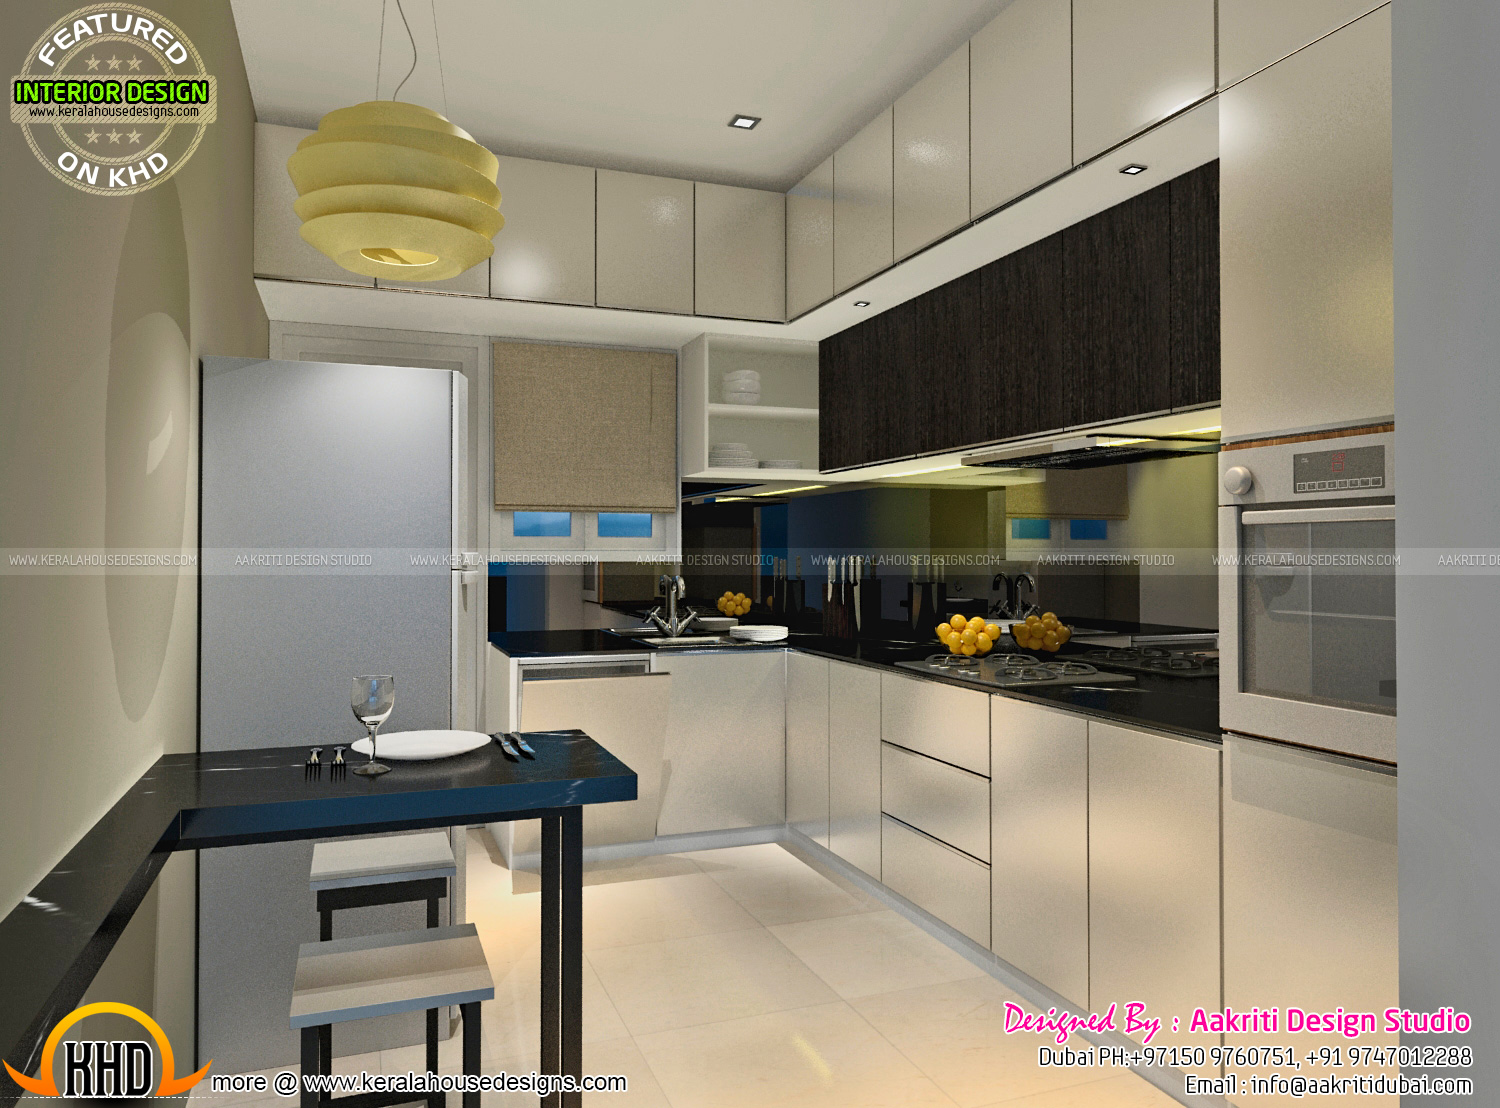 Dining kitchen wash area interior kerala home design for Home interior design images